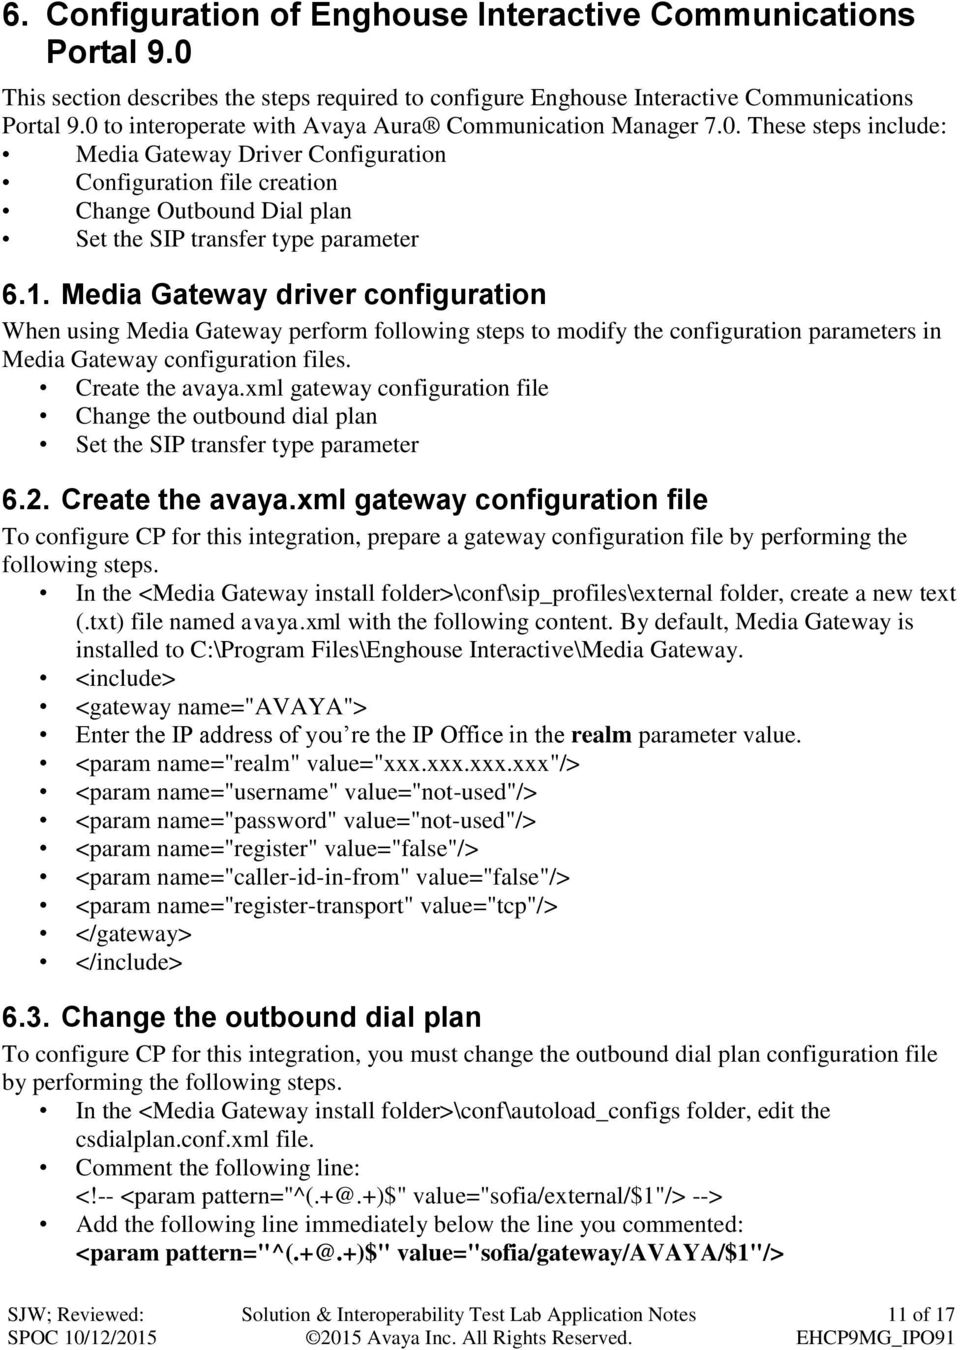 1. Media Gateway driver configuration When using Media Gateway perform following steps to modify the configuration parameters in Media Gateway configuration files. Create the avaya.